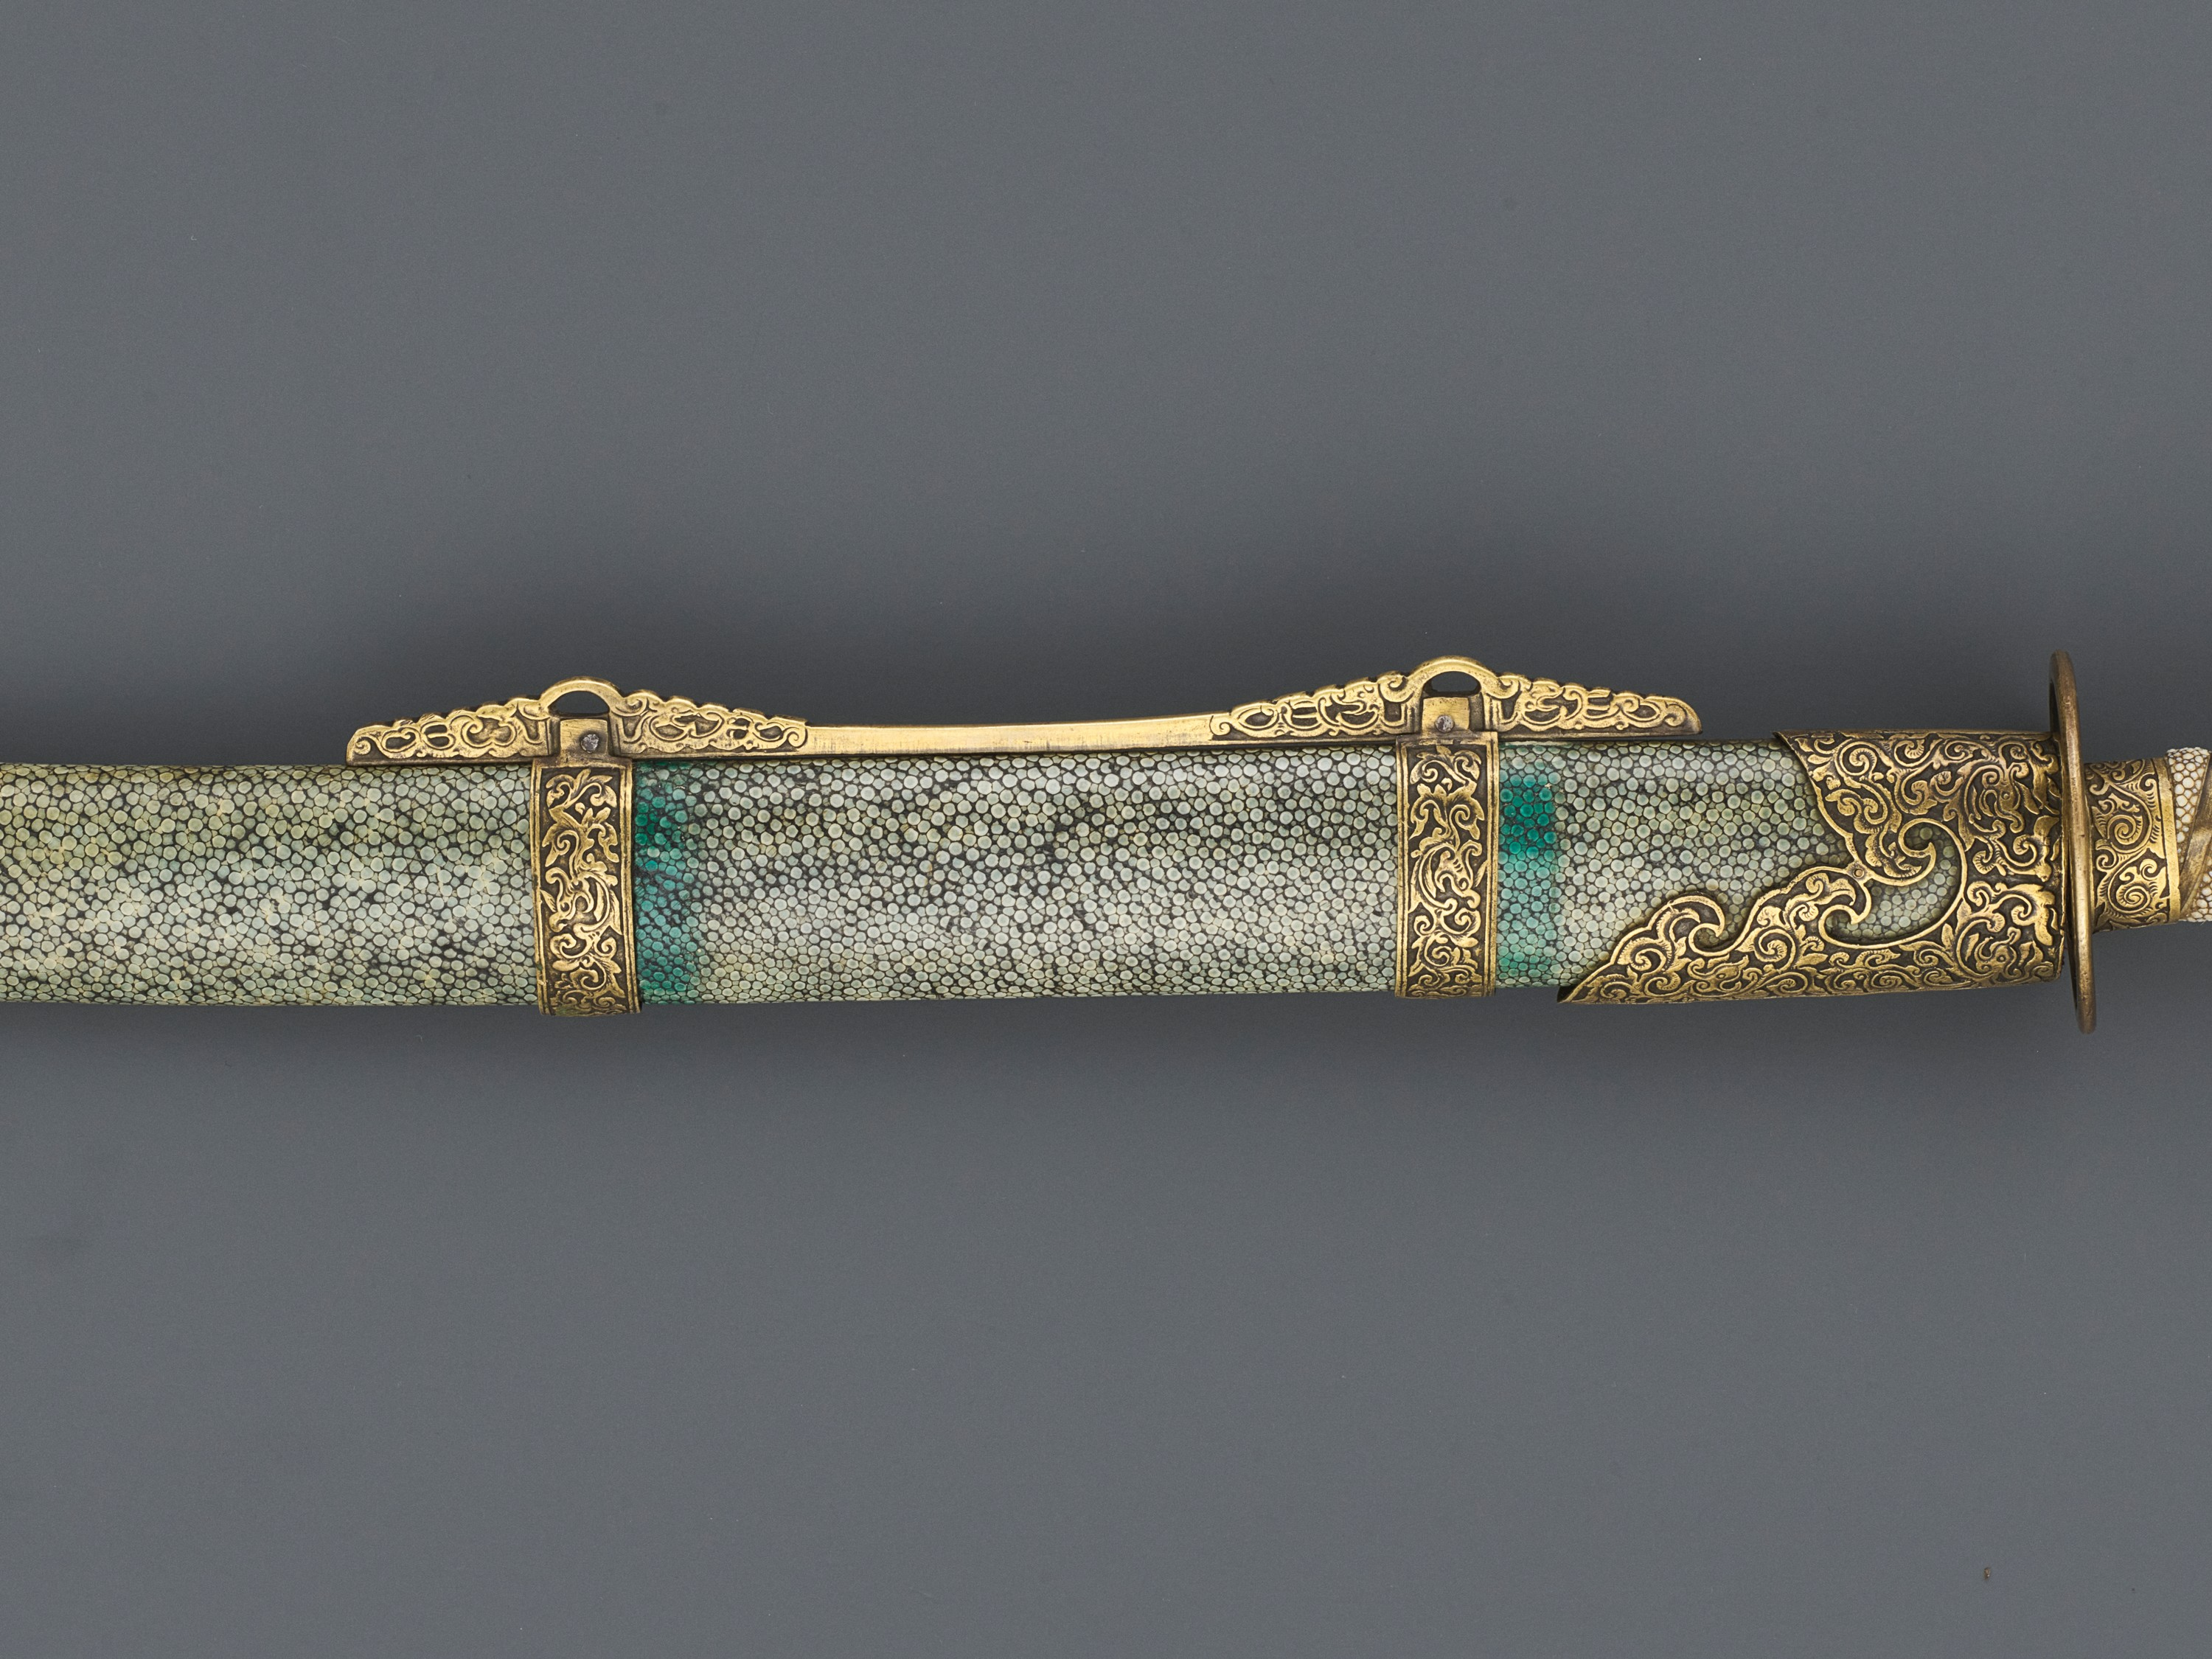 A CEREMONIAL SWORD AND SCABBARD, QING DYNASTY - Image 3 of 7